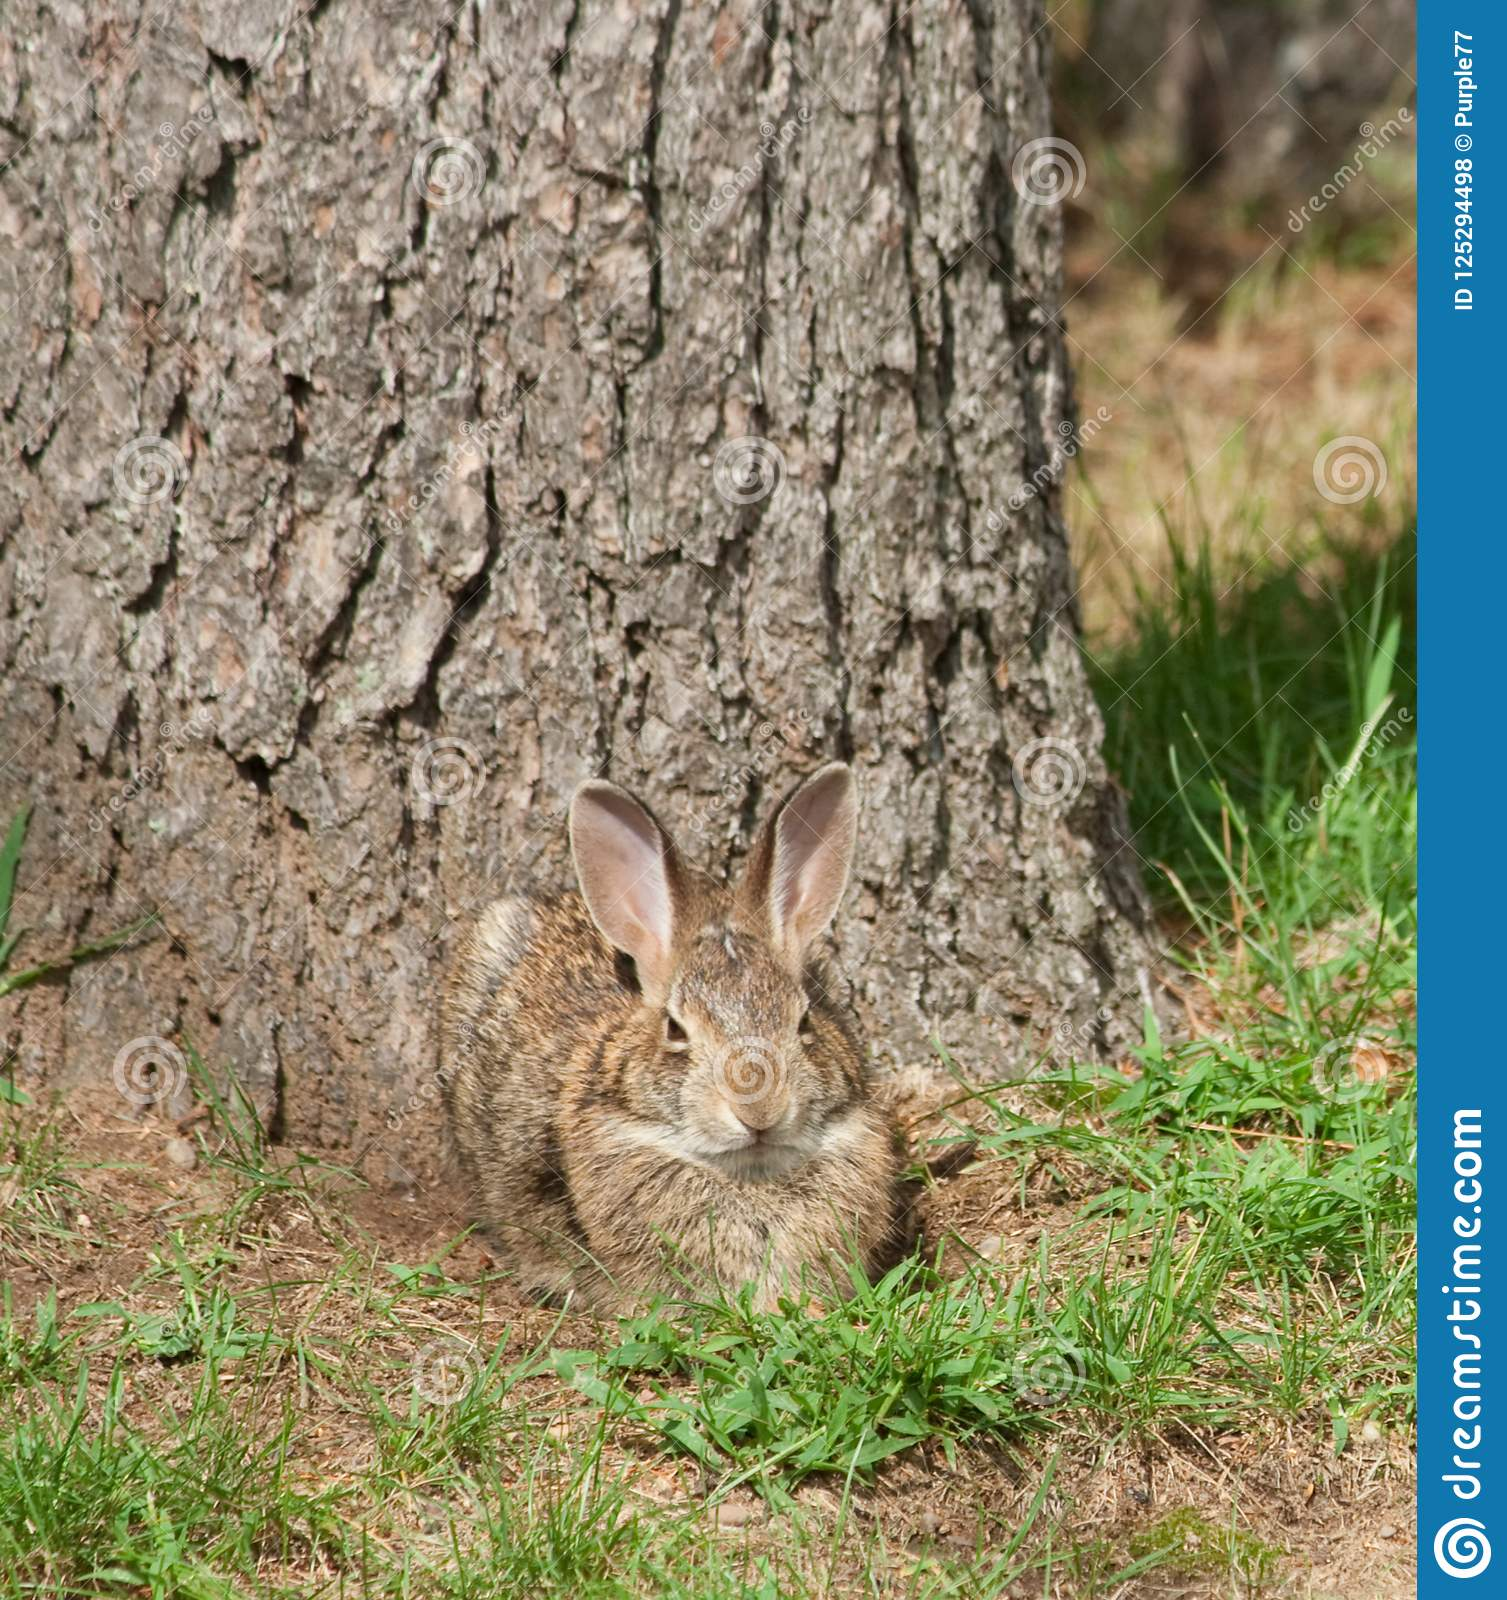 Wild Rabbit with a Grin